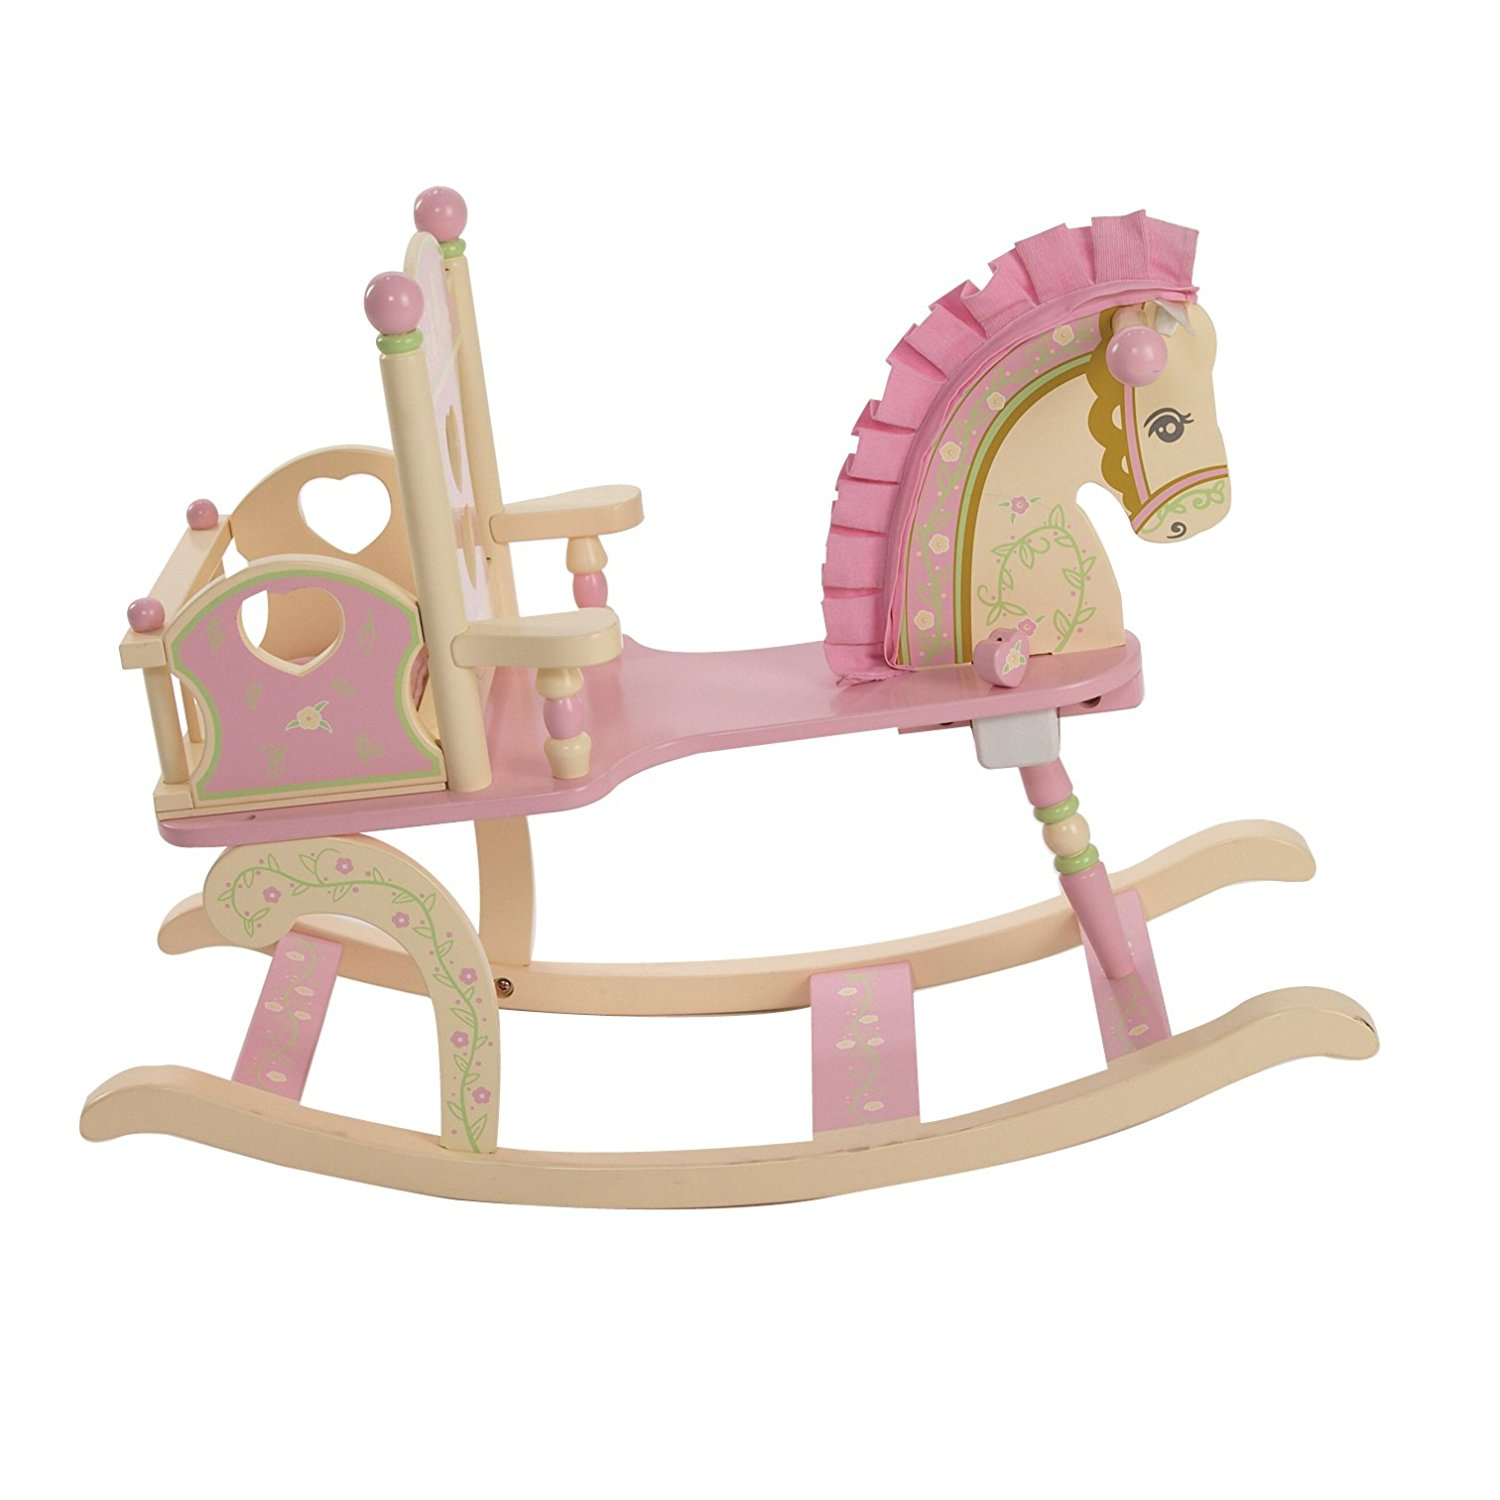 Amazon.com: Wildkin Rock-A-My-Baby Rocking Horse: Toys & Games